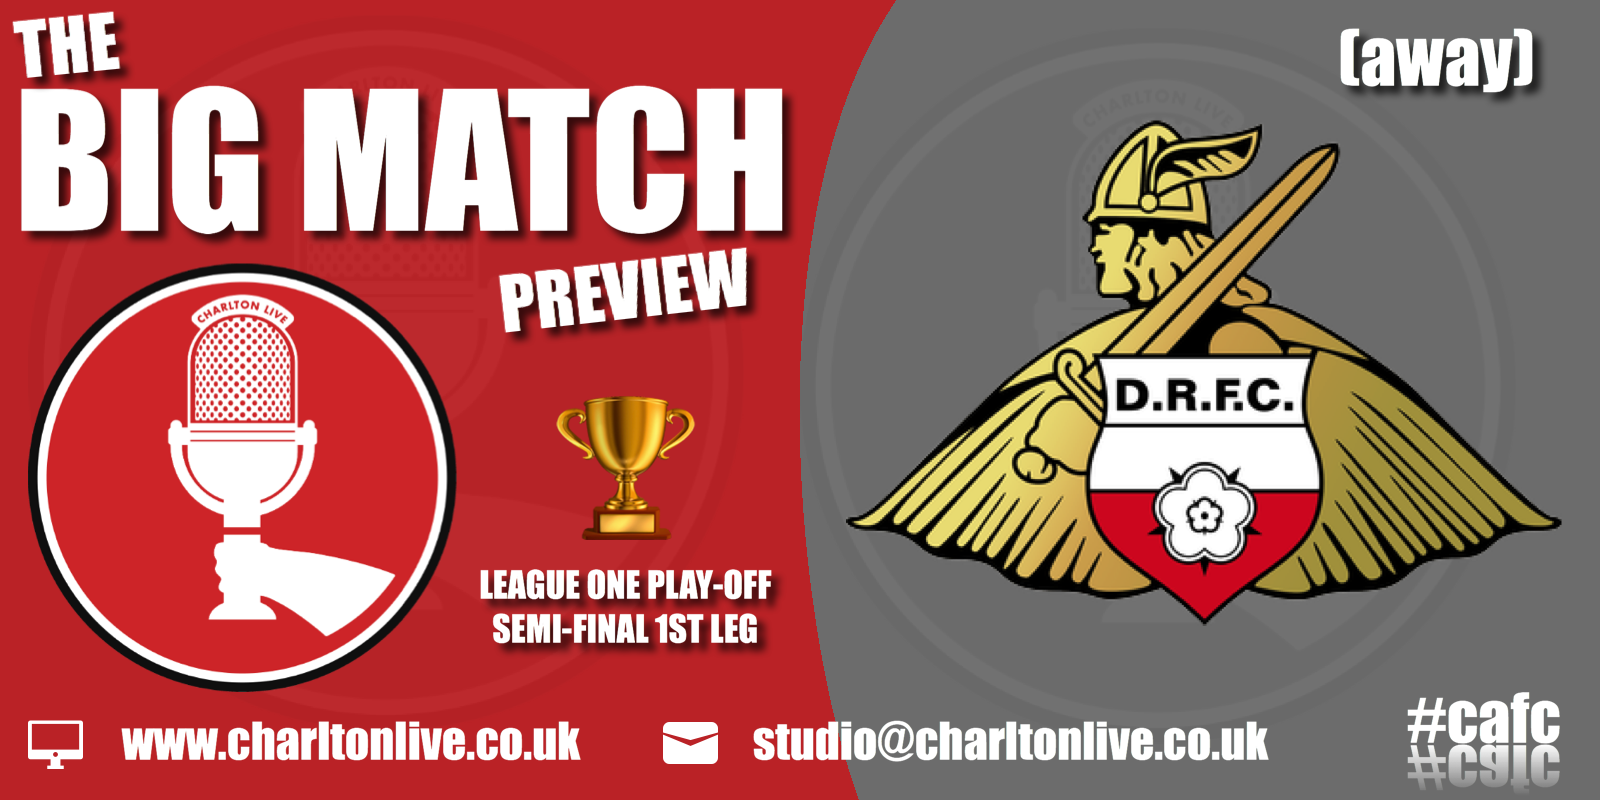 Join Louis Mendez and Tom Wallin as they gear up for the 1st leg of the play-off semi-final with Doncaster. They look back at the […]